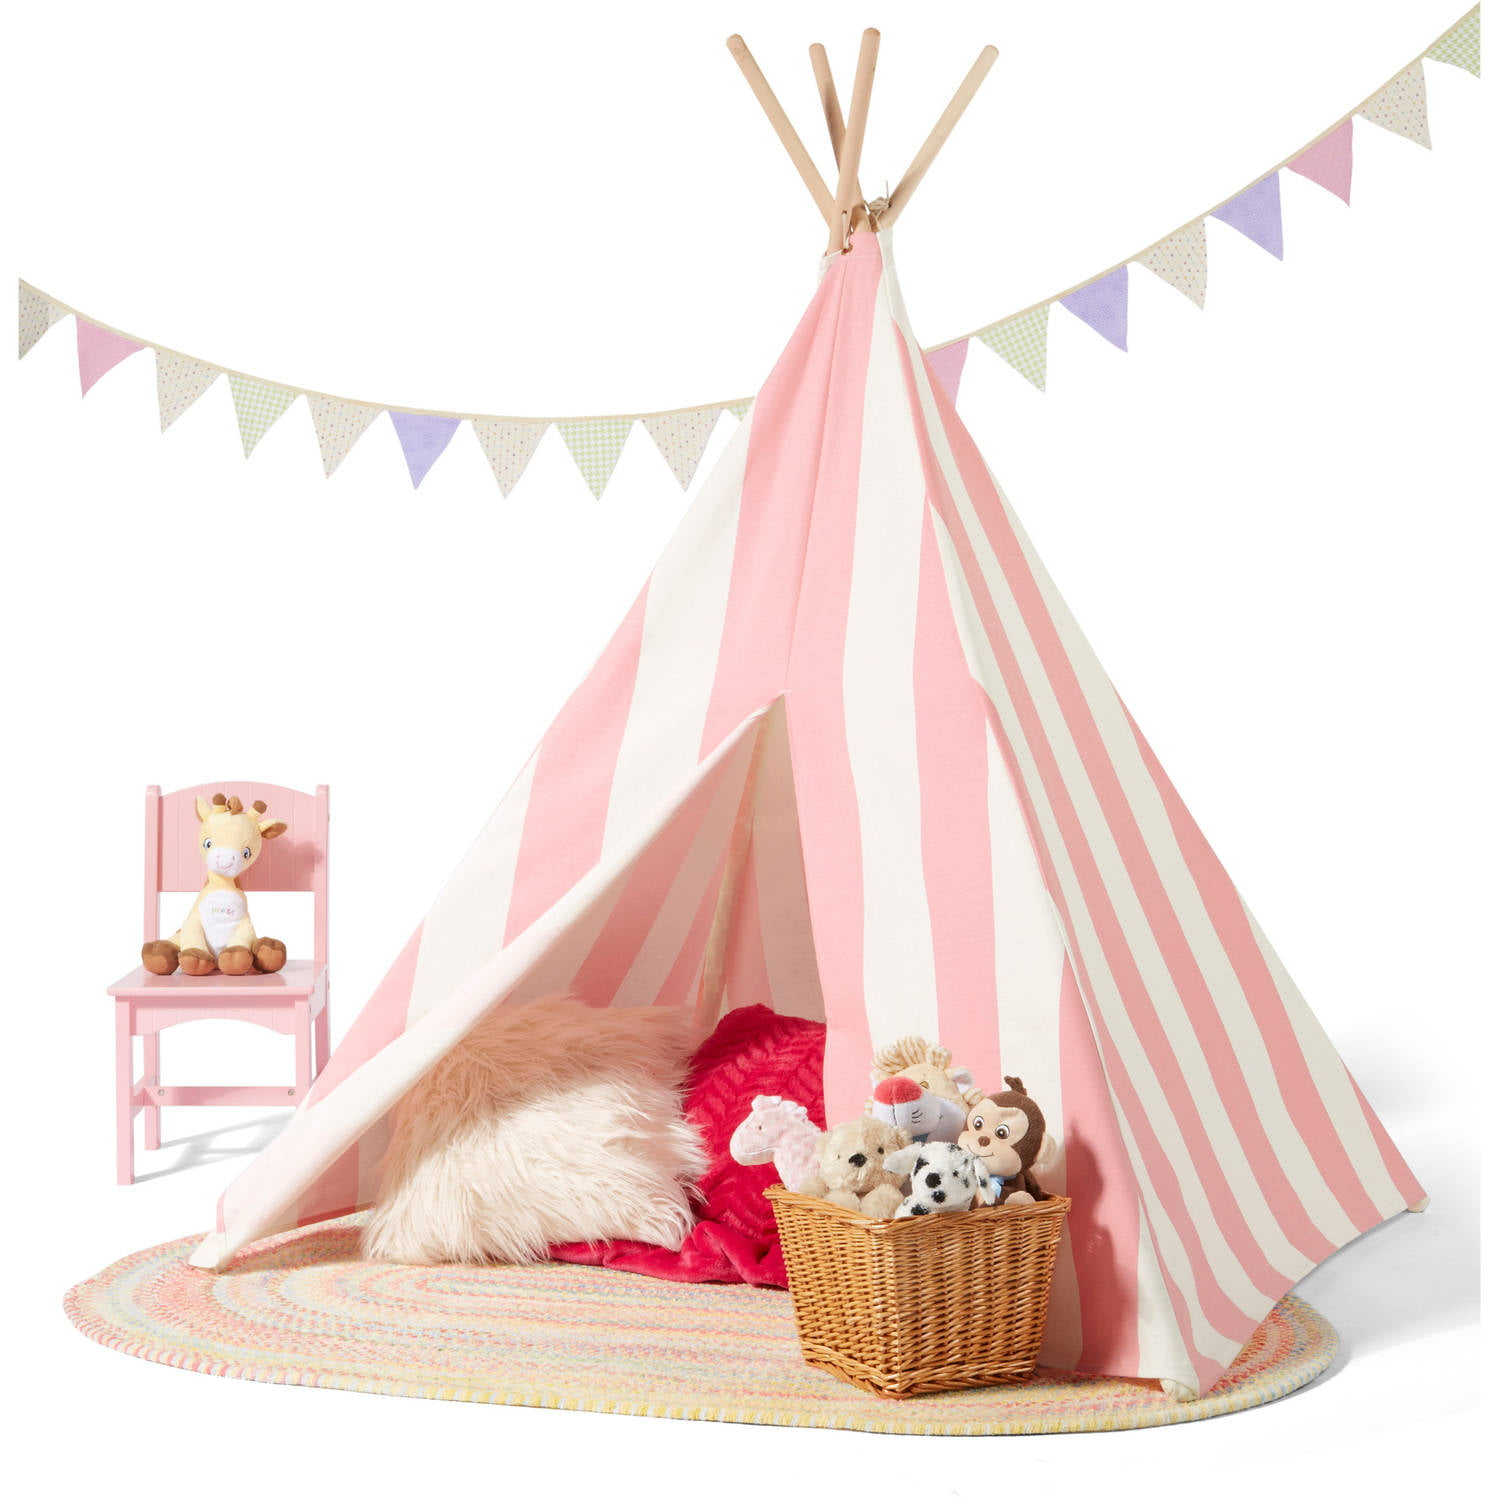 Clevr 5-sided 6u0027 Kids Teepee Play Tent Ready-to-Paint Canvas w/ Decorations - Walmart.com  sc 1 st  Walmart.com : tipi tent kids - memphite.com